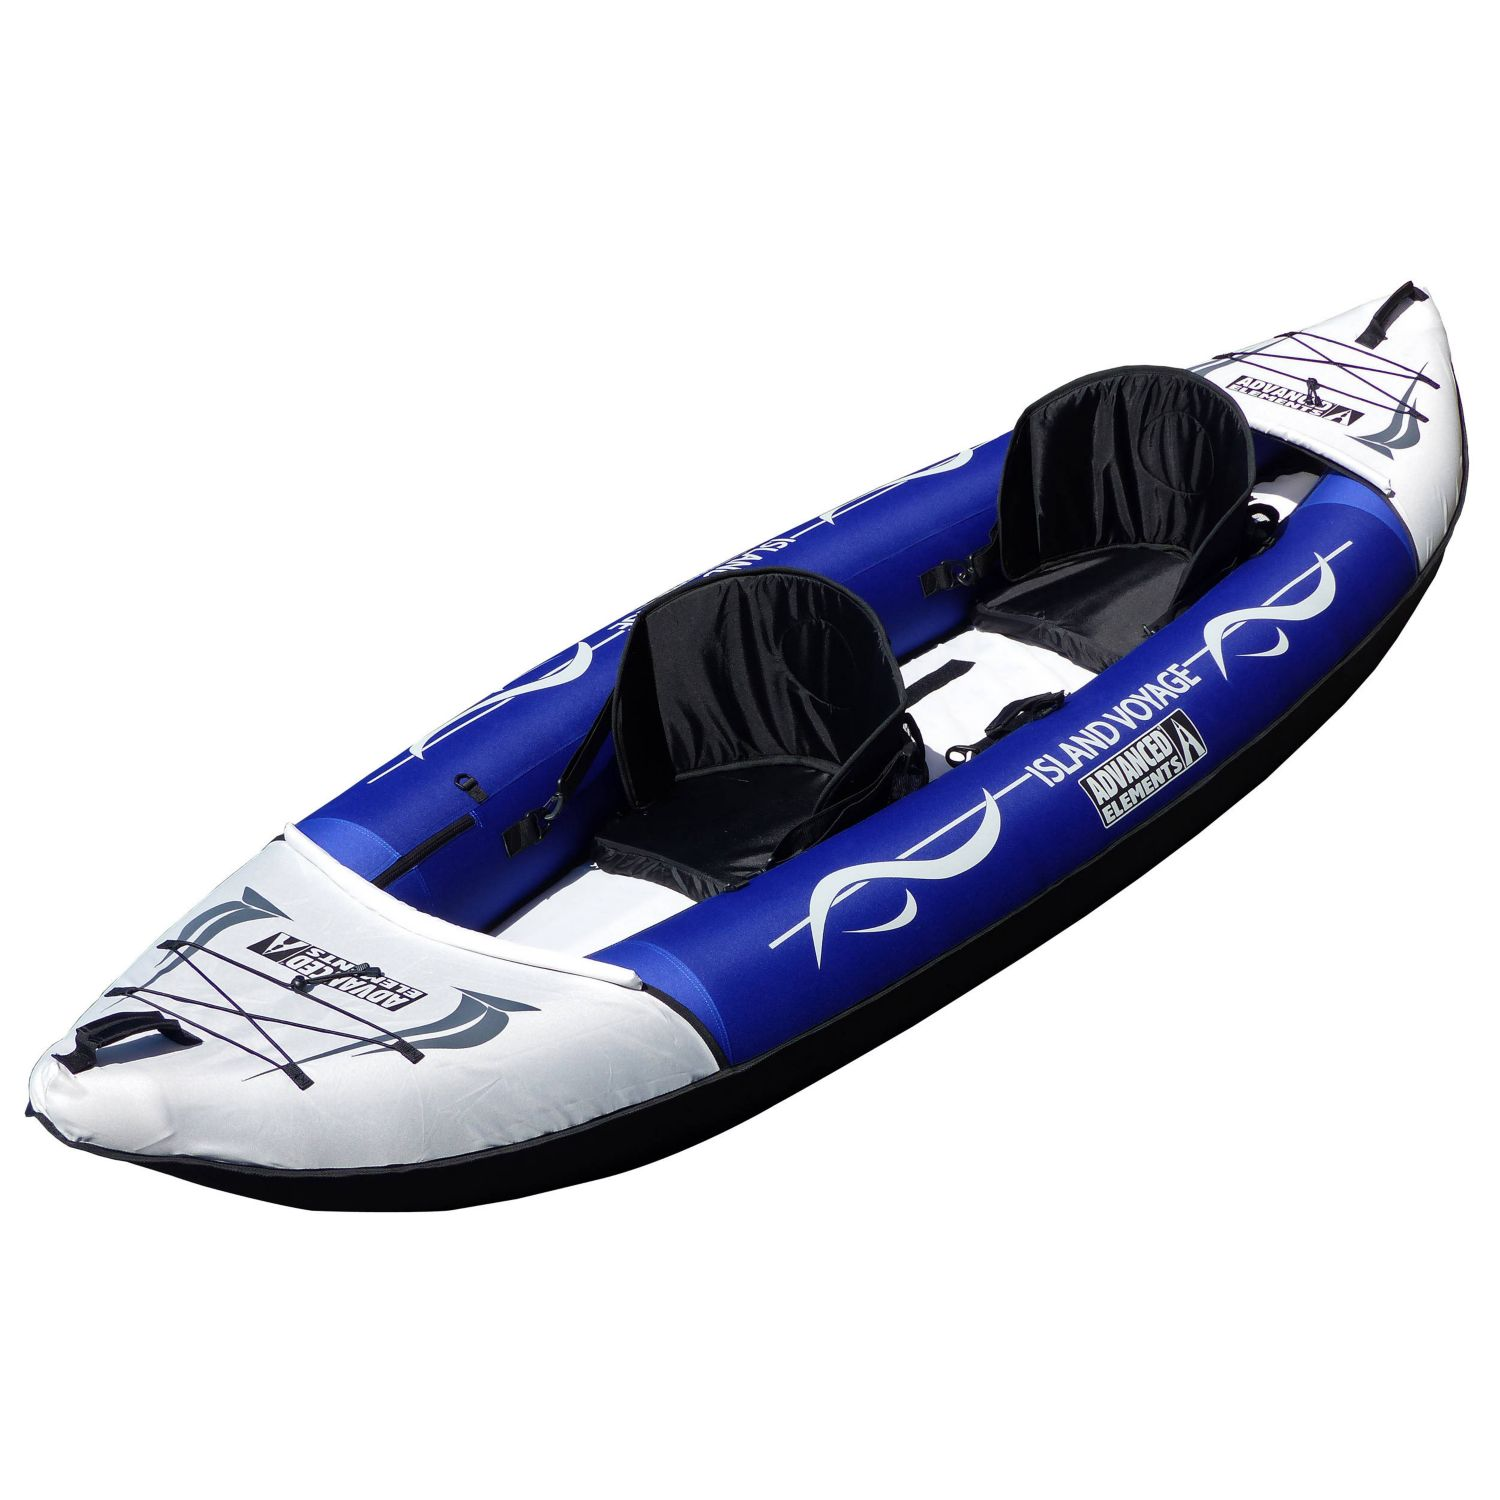 Kayak Advanced Elements Island Voyage 2 Inflatable Kayak